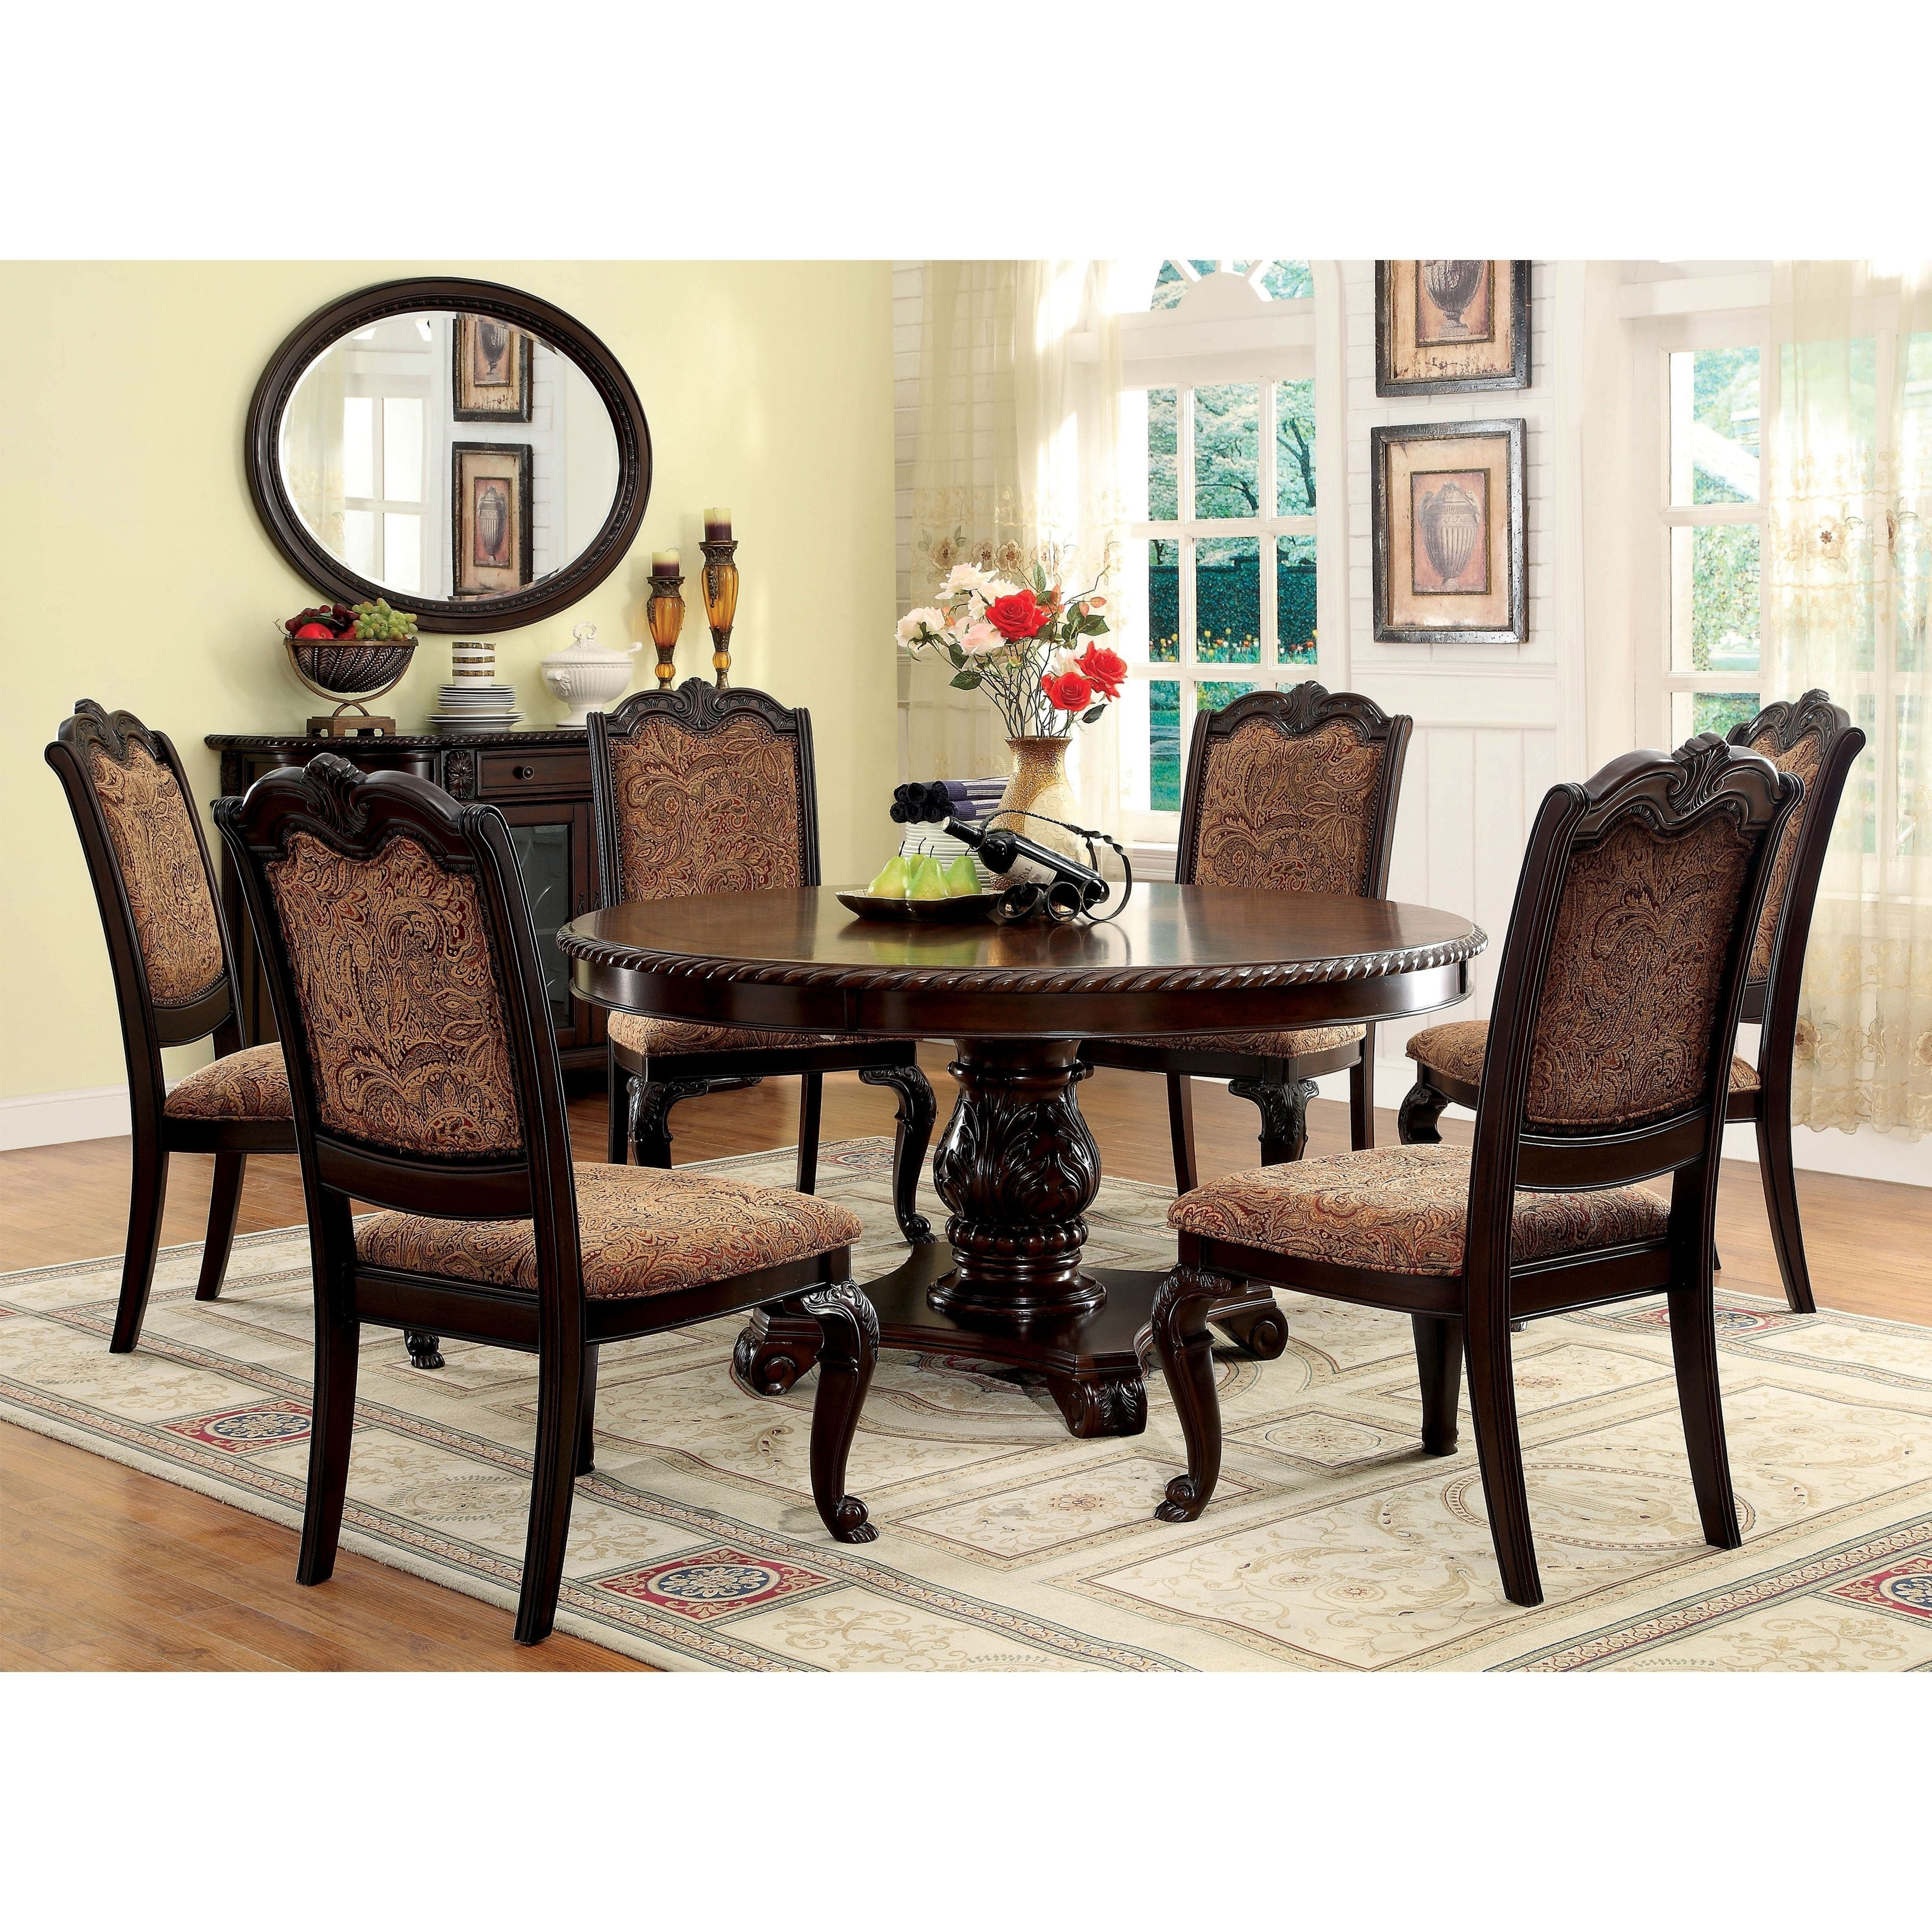 Furniture Of America Oskarre Iii Brown Cherry (Red) 7 Piece Formal In Most Recent Valencia 5 Piece Round Dining Sets With Uph Seat Side Chairs (Photo 10 of 20)